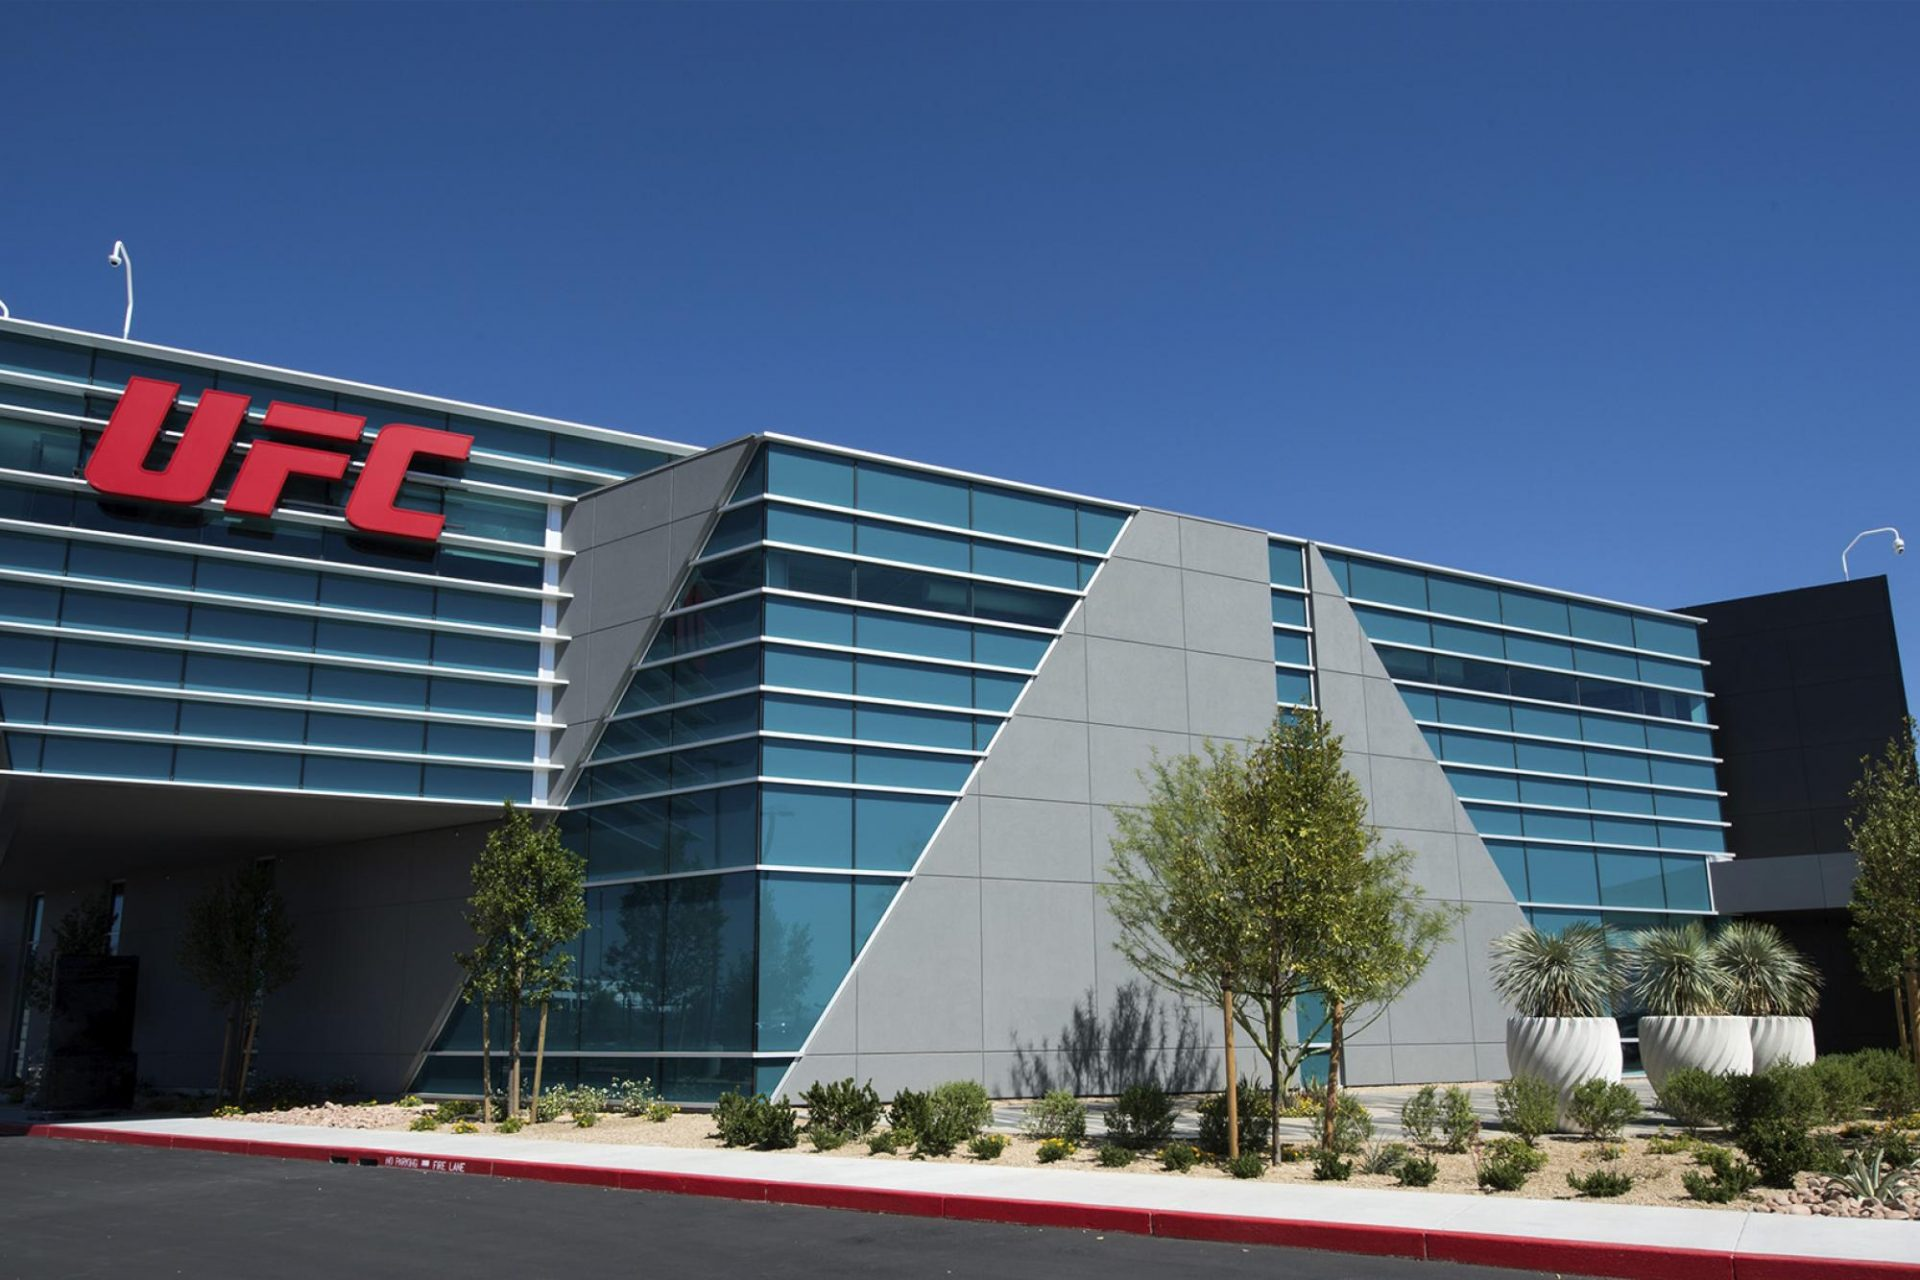 UFC aims to become self sufficient as it buys 10 acres land to build hotel for fighters - UFC